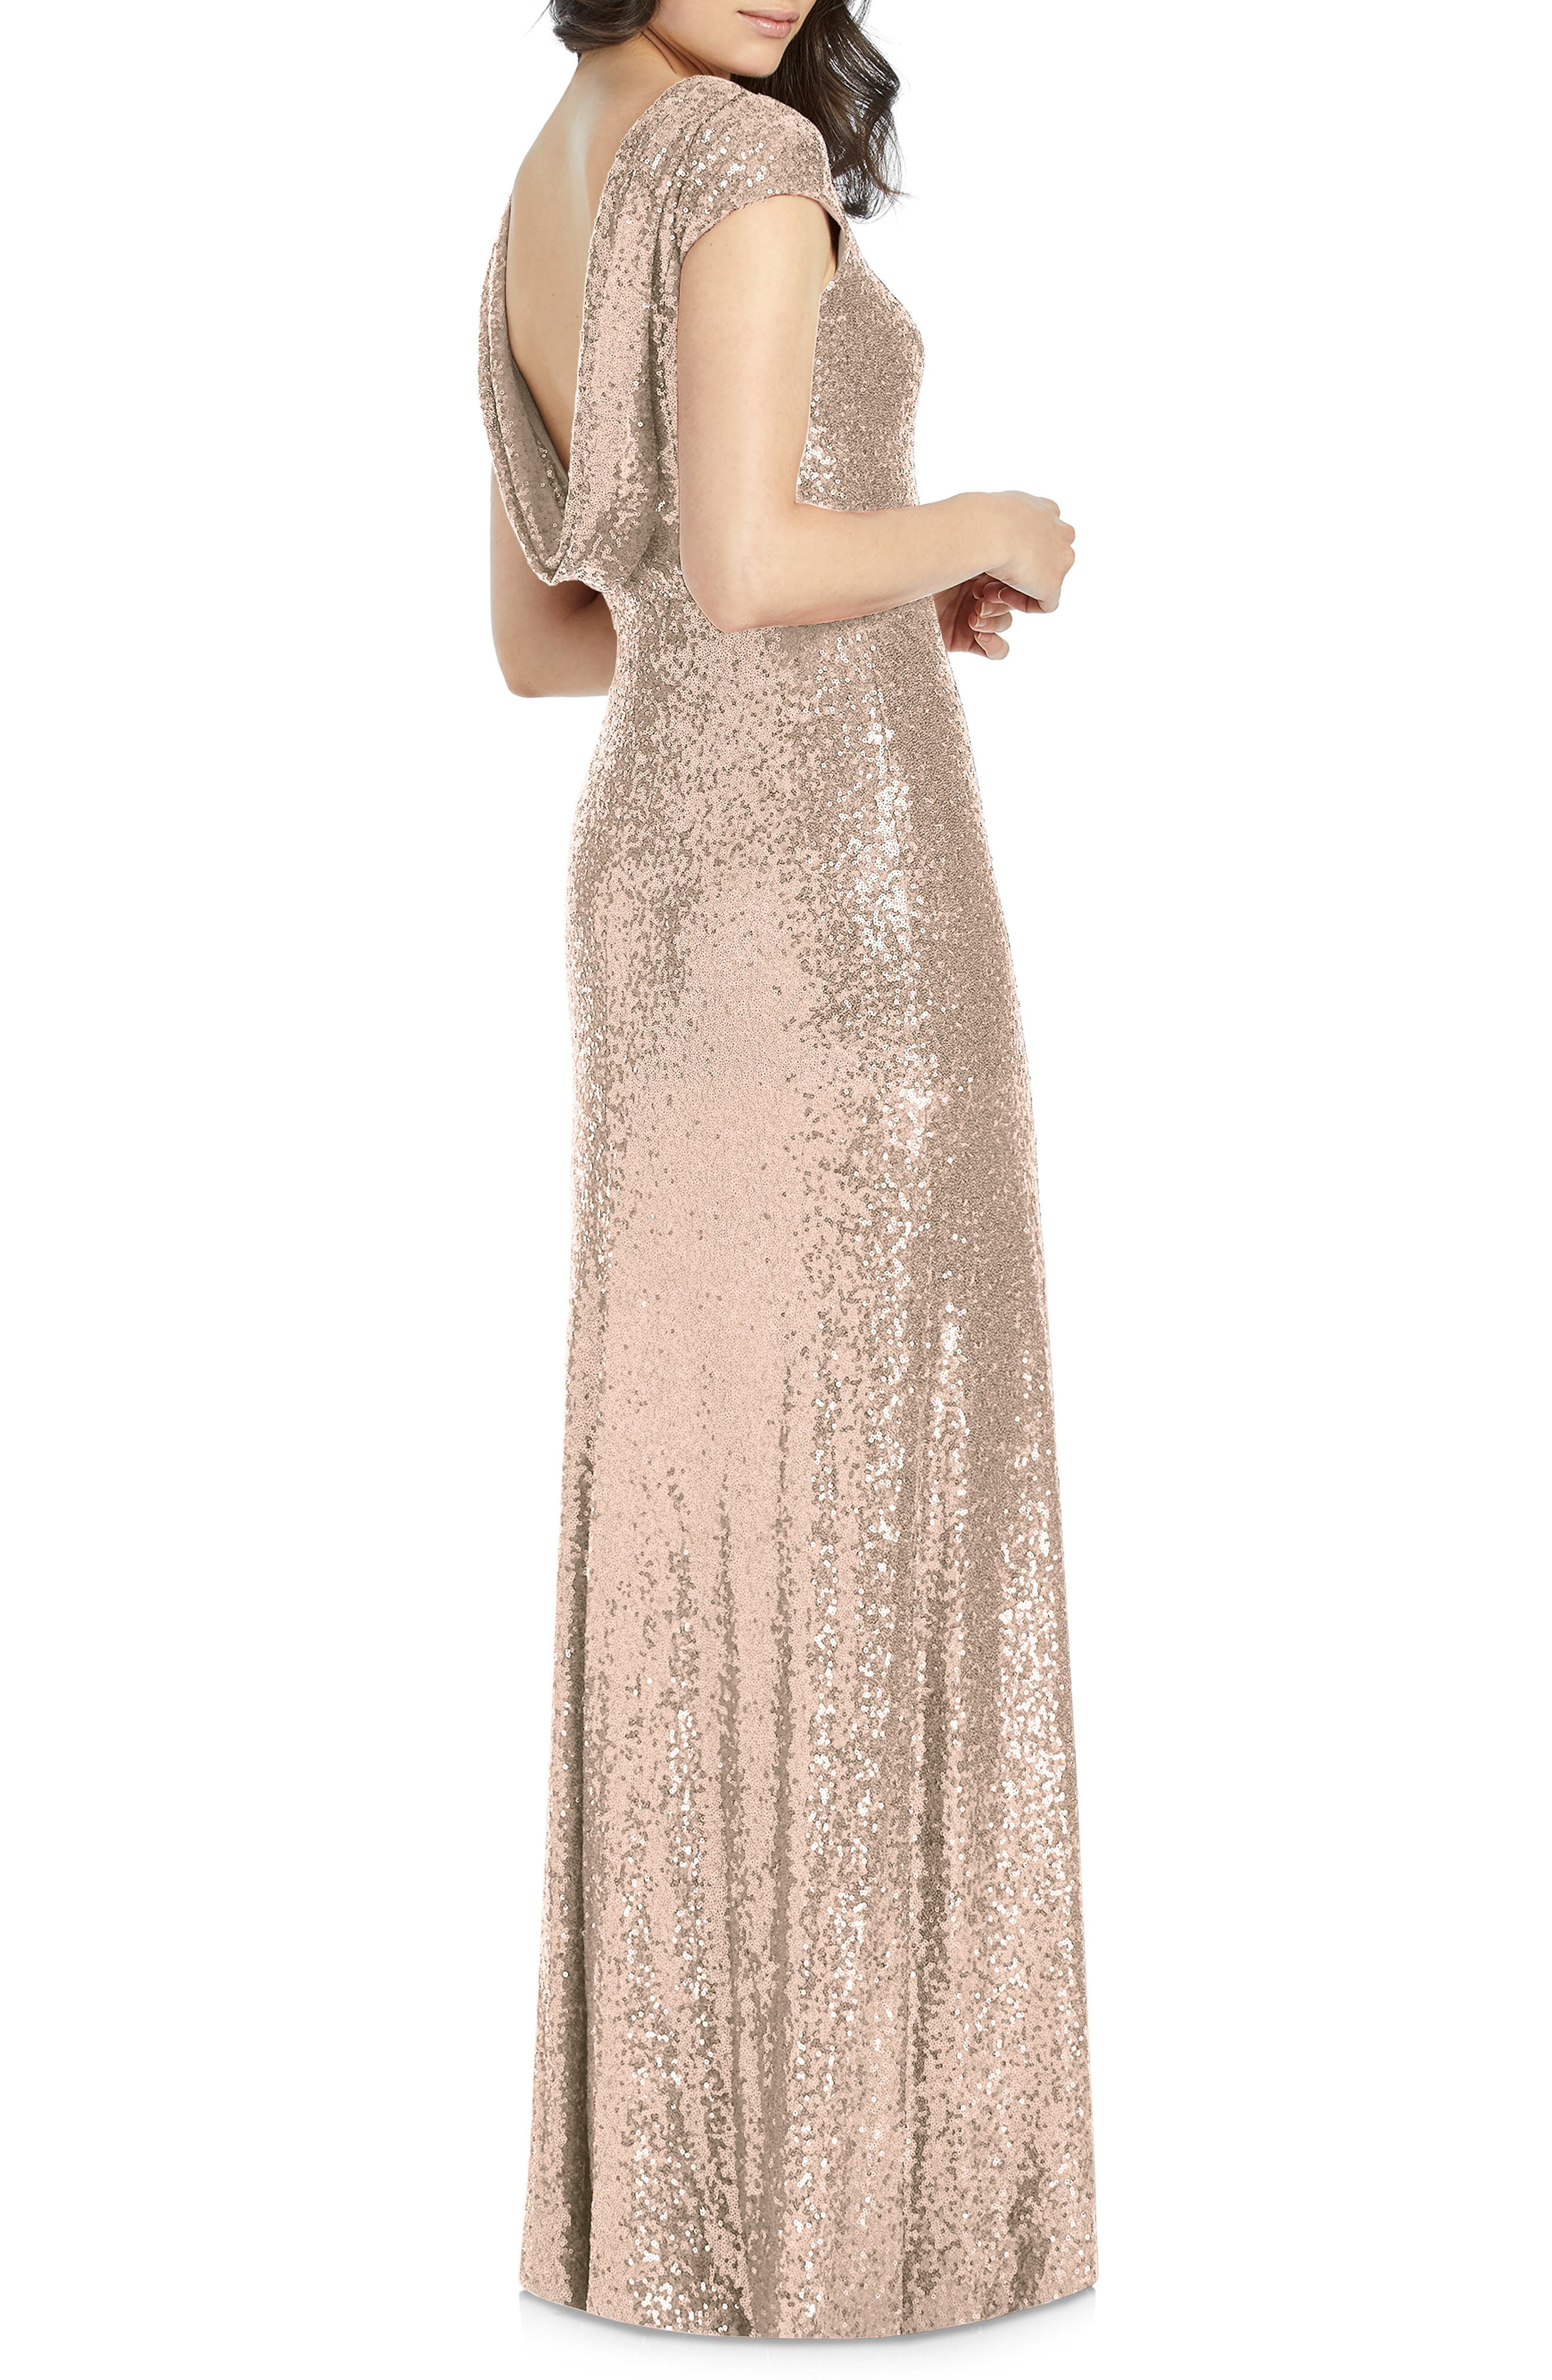 DESSY COLLECTION, Elle Cap Sleeve Sequin Gown, Alternate thumbnail 2, color, ROSE GOLD